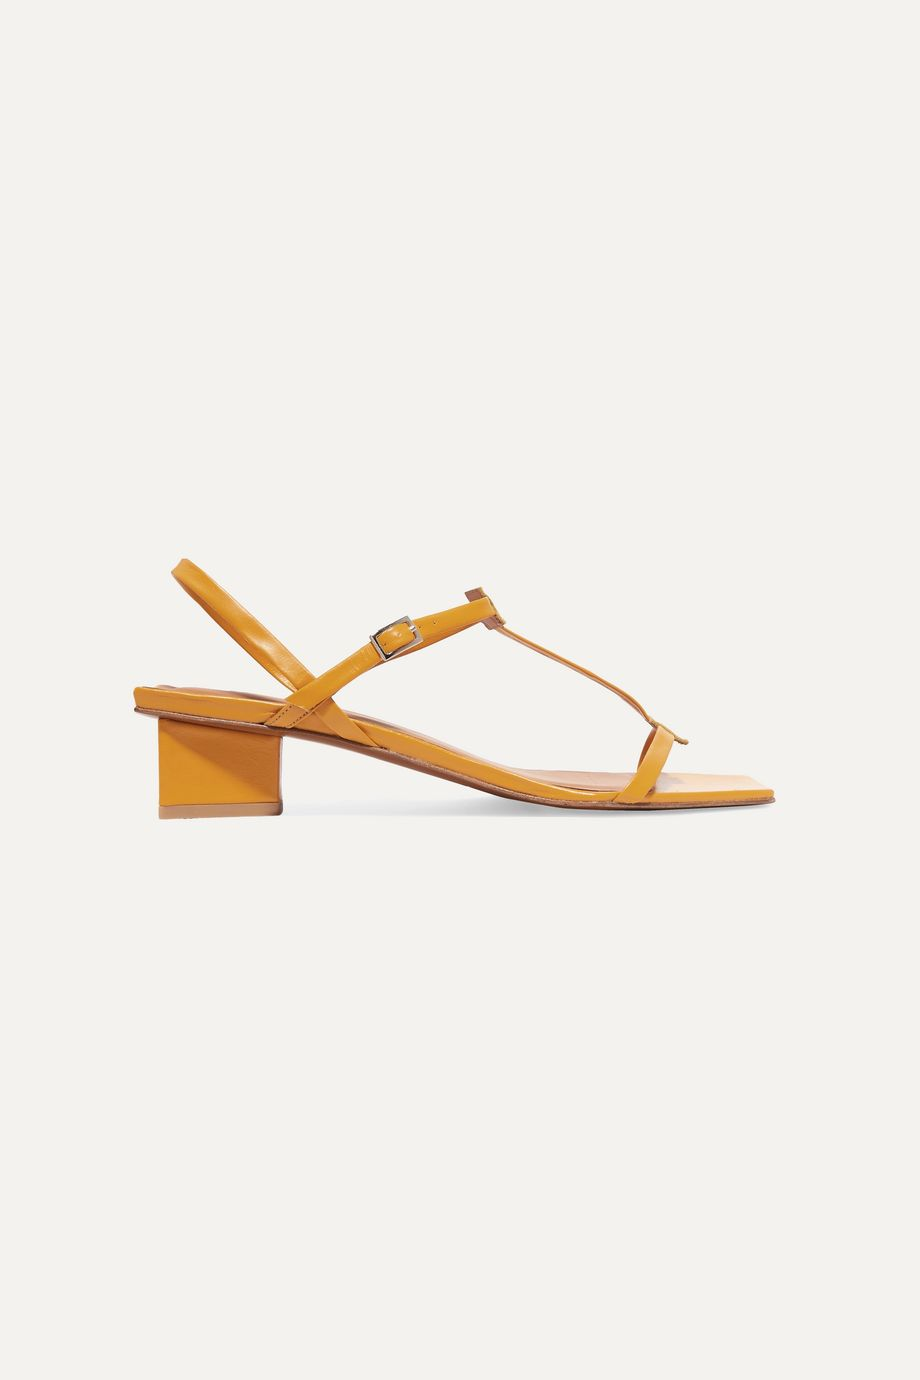 BY FAR Krista leather sandals